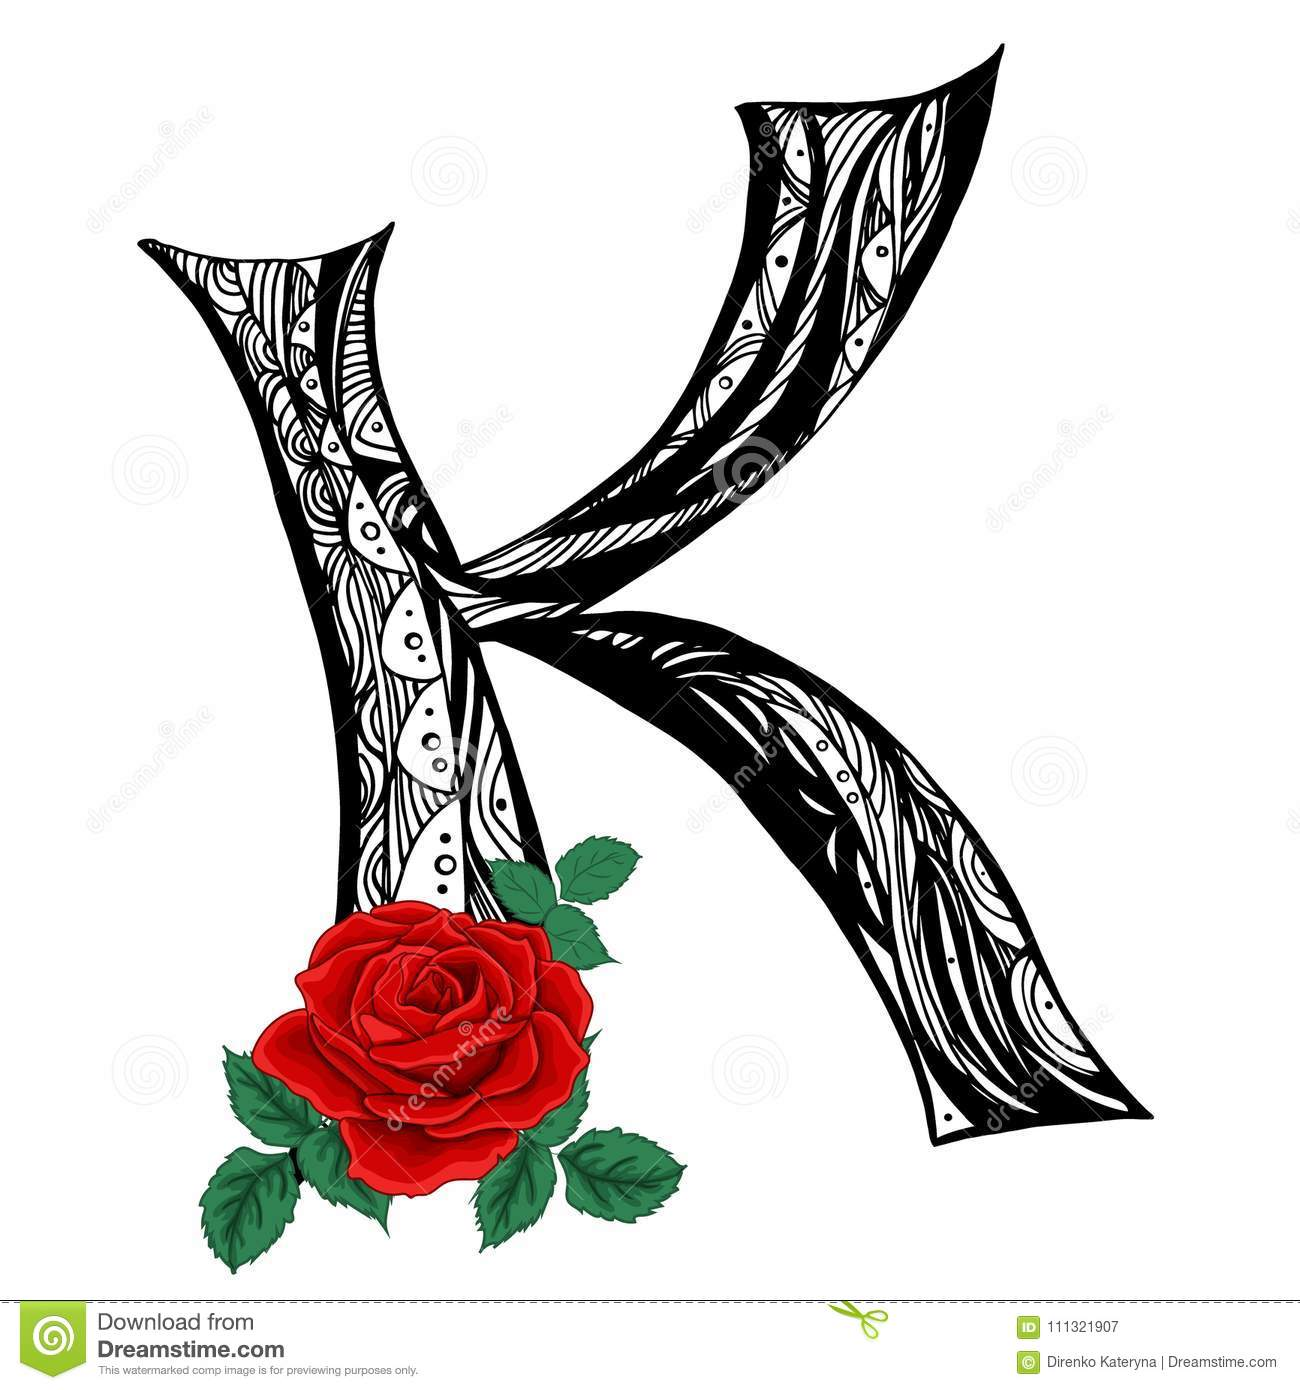 Elegant Capital Letter K In The Style Of The Doodle Black And White